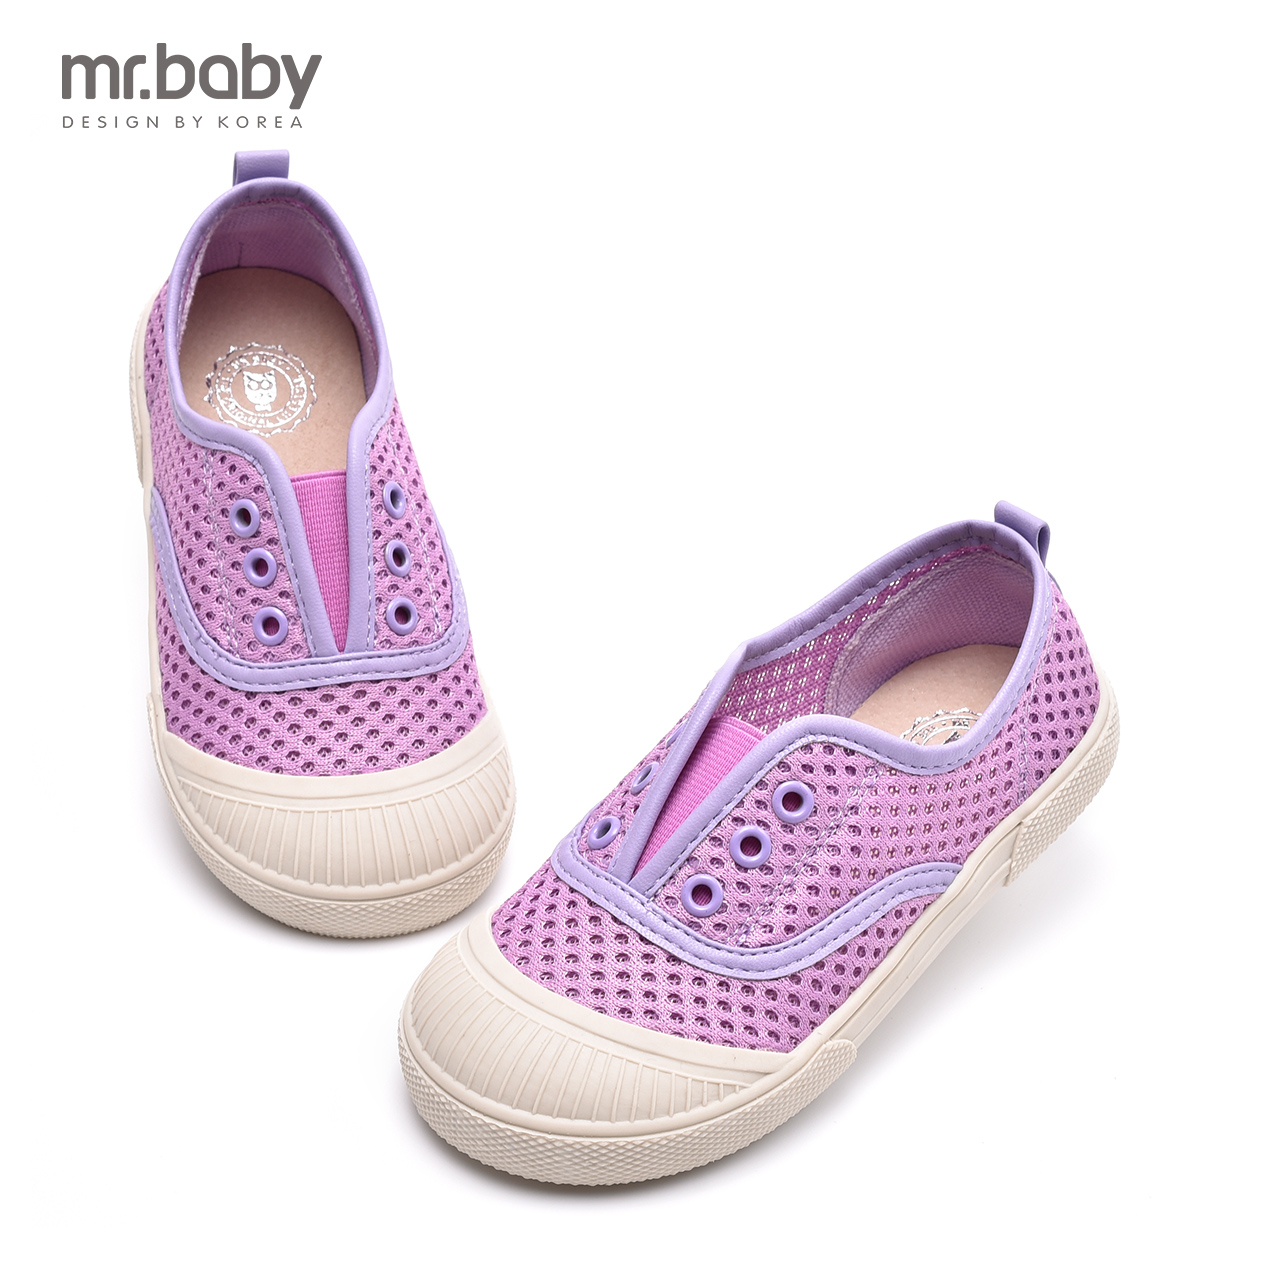 Mr. baby 2016 korean female children's dot mesh girls sports shoes new fashion casual shoes shell head